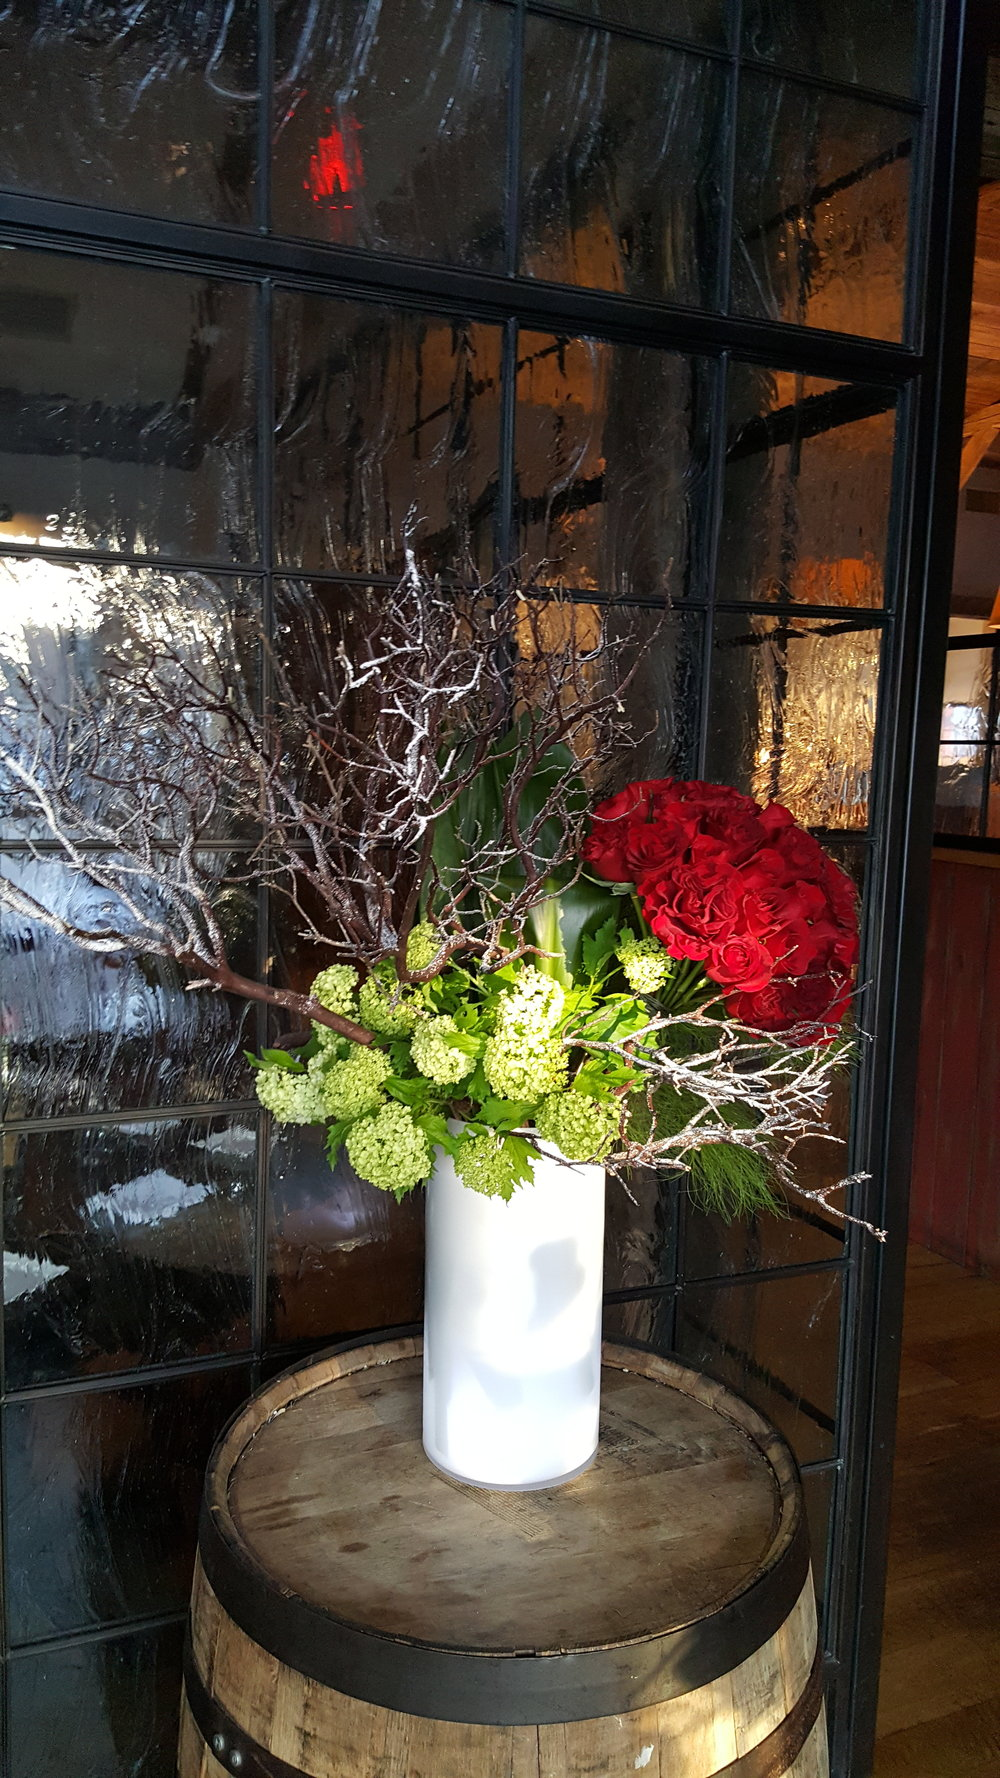 Roses, green hydrangeas and sticks in a arrangement for restaurant settings